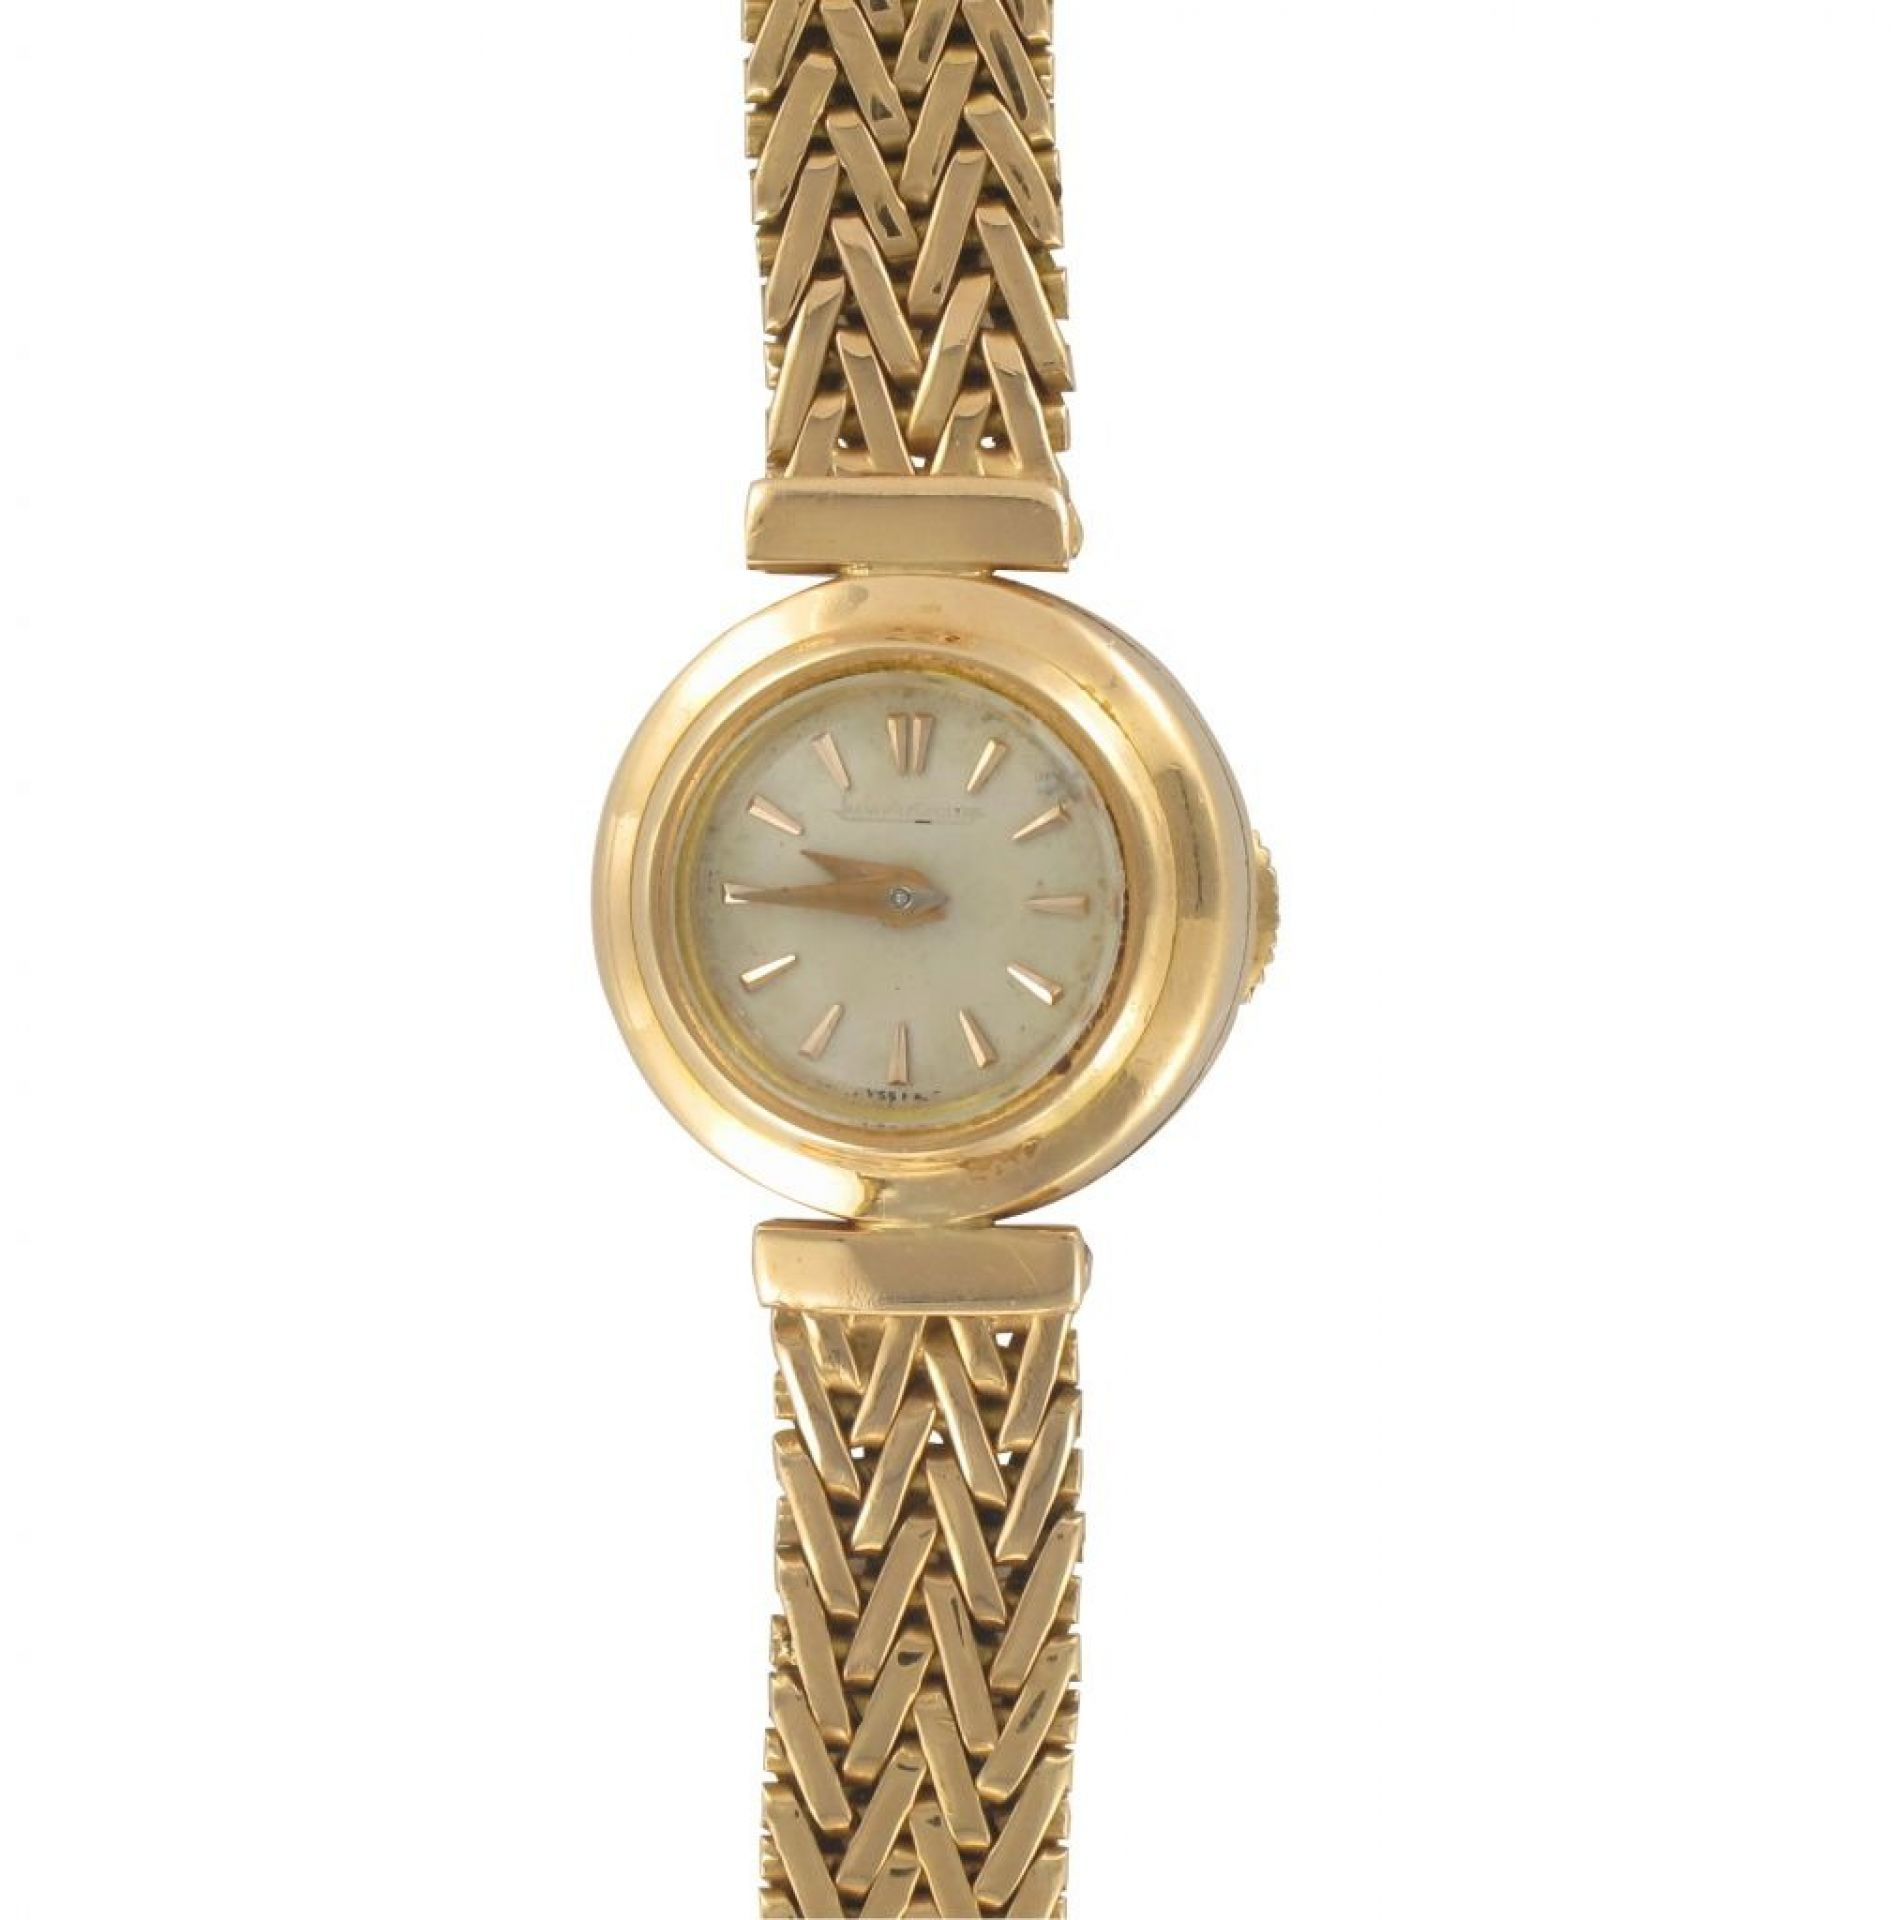 Jaeger Lecoultre Ladies Watch Gold